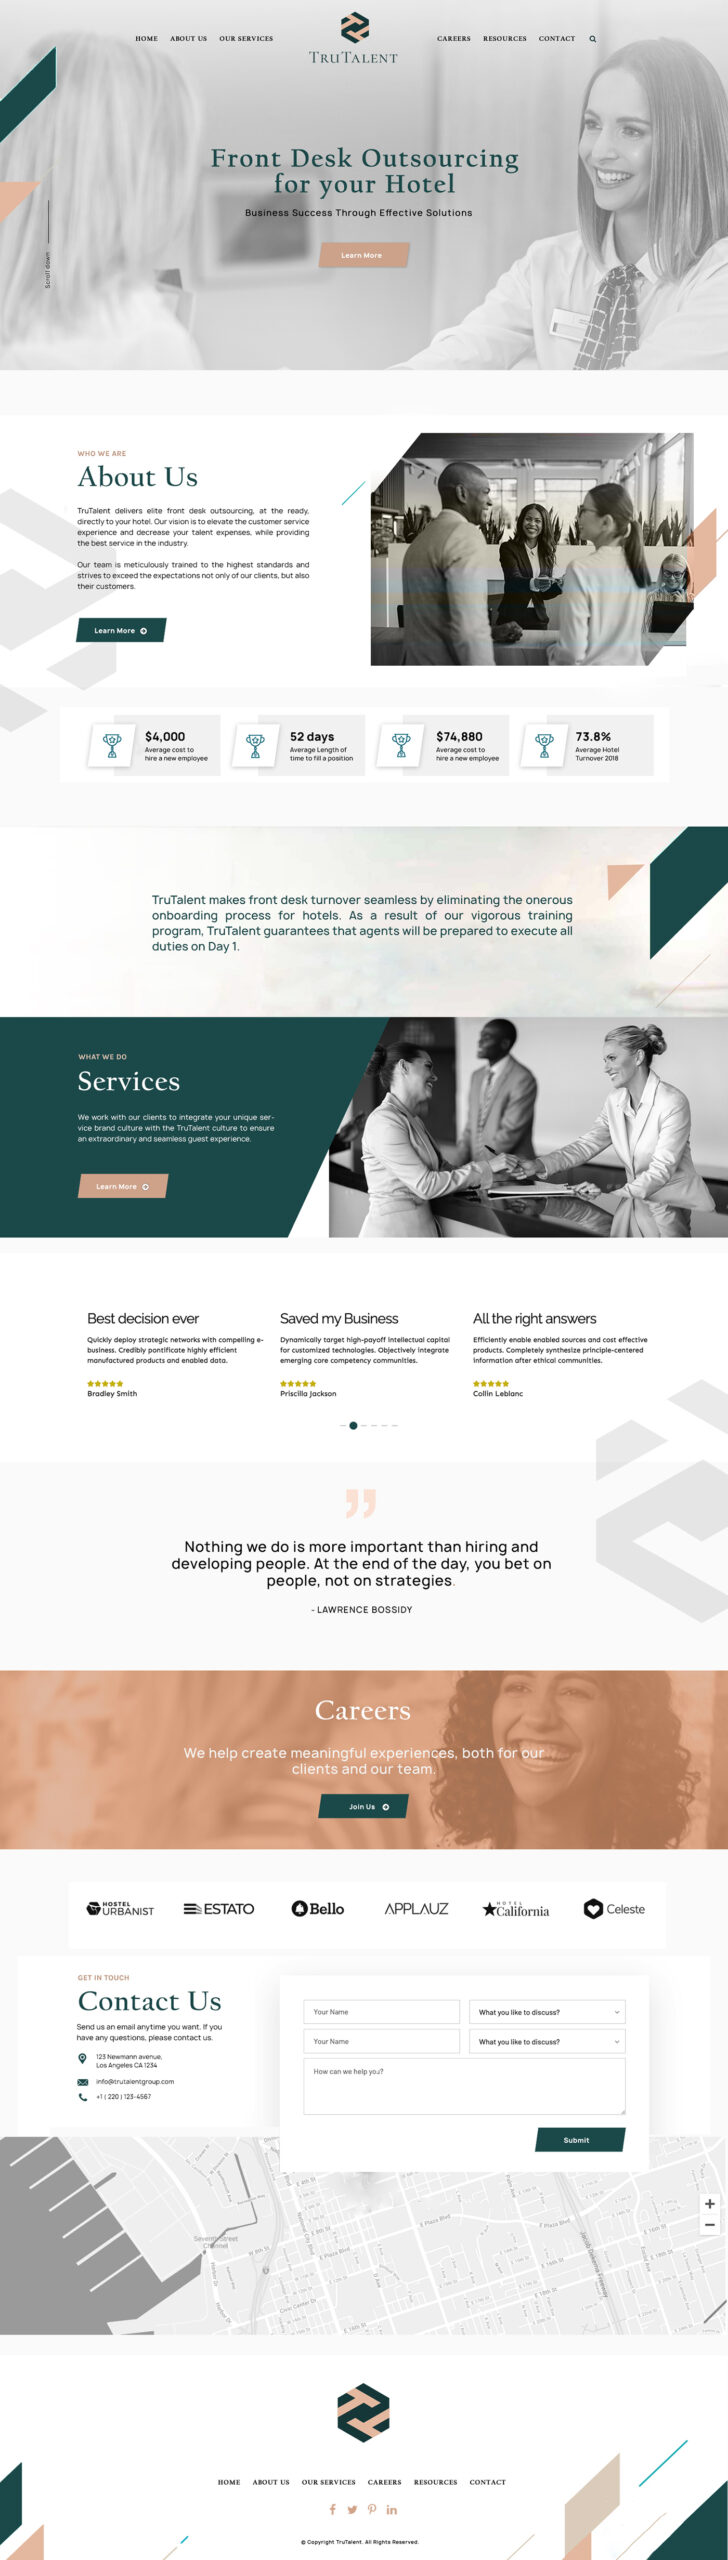 Recruitment Website Design Job Portal